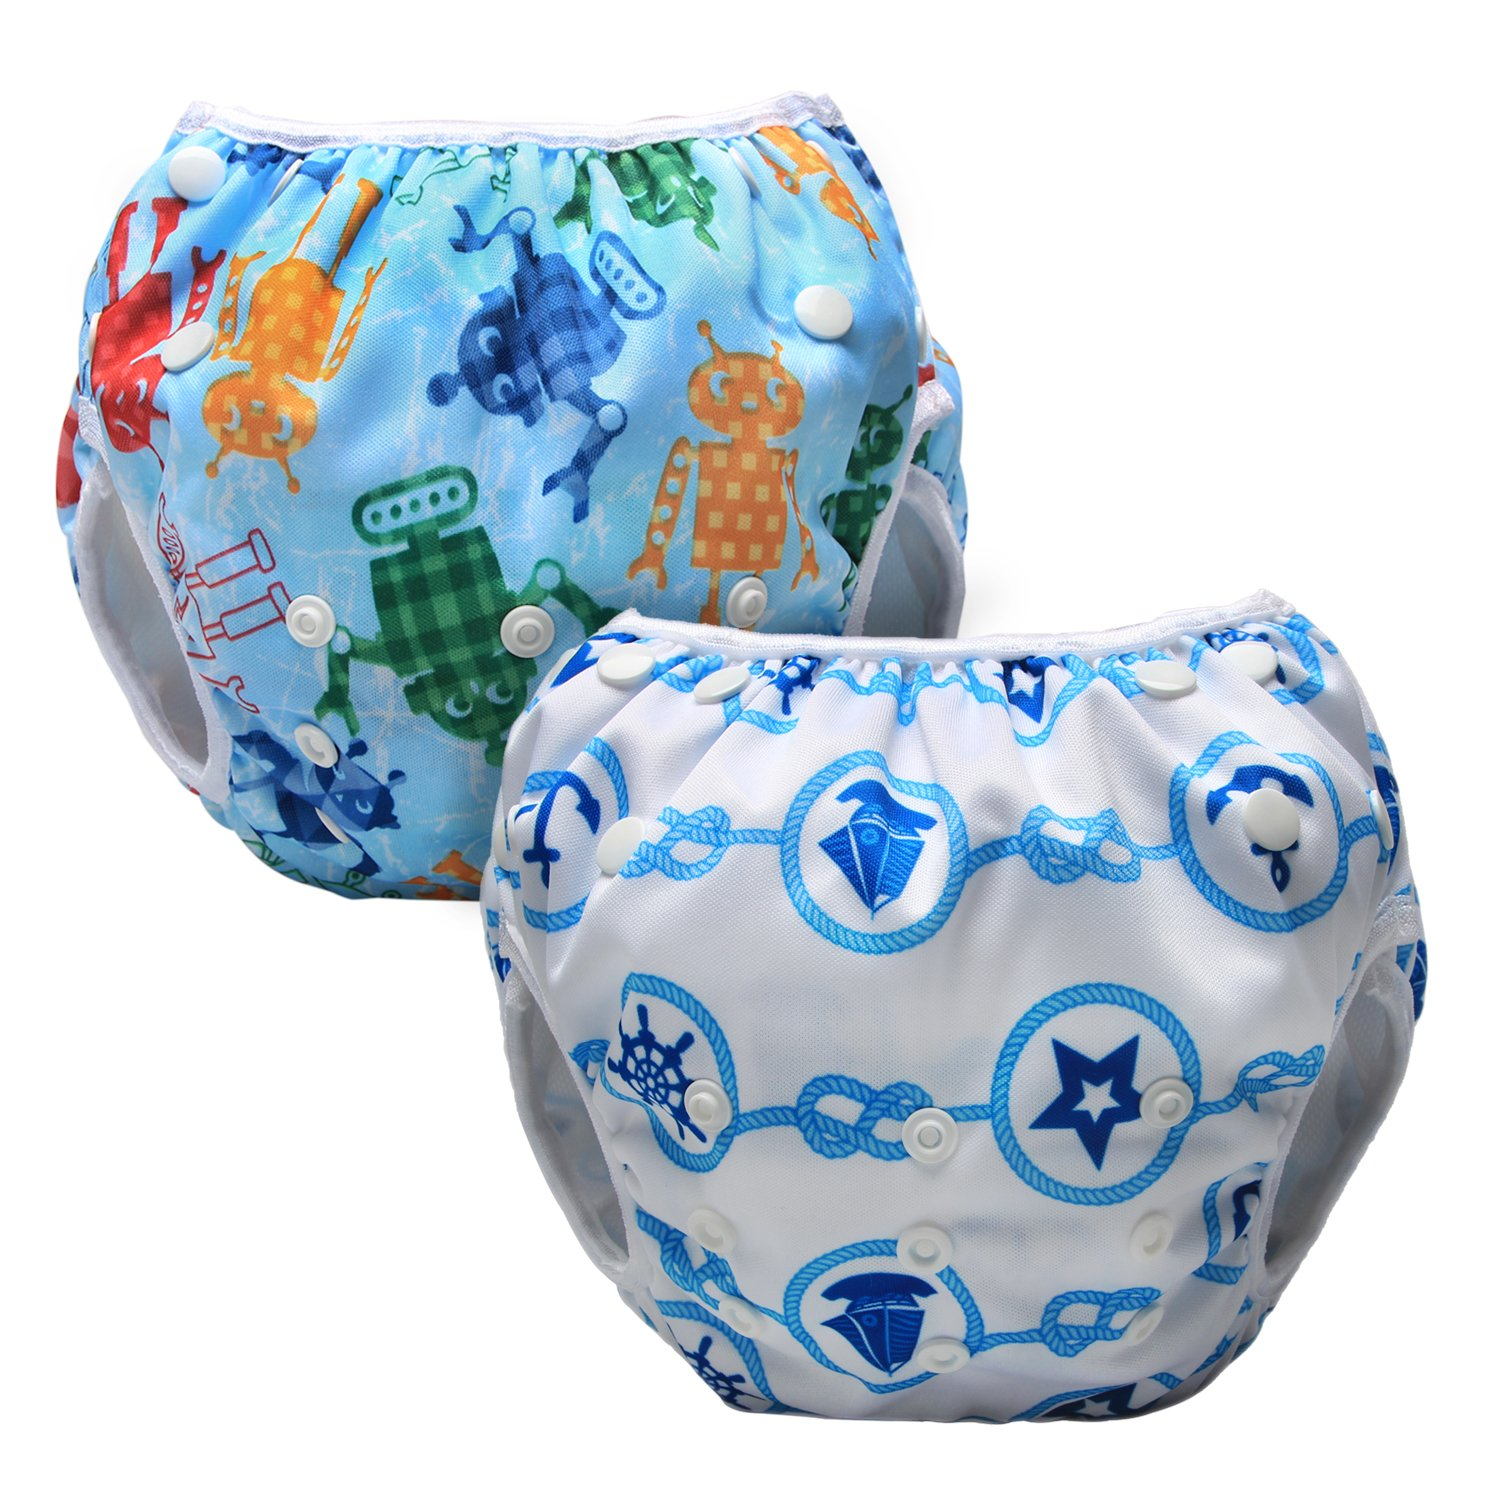 Luxja Reusable Swim Diaper (Pack of 2), Adjustable Swimming Diaper for Baby (0-3 years) Beach + Colorful Stars